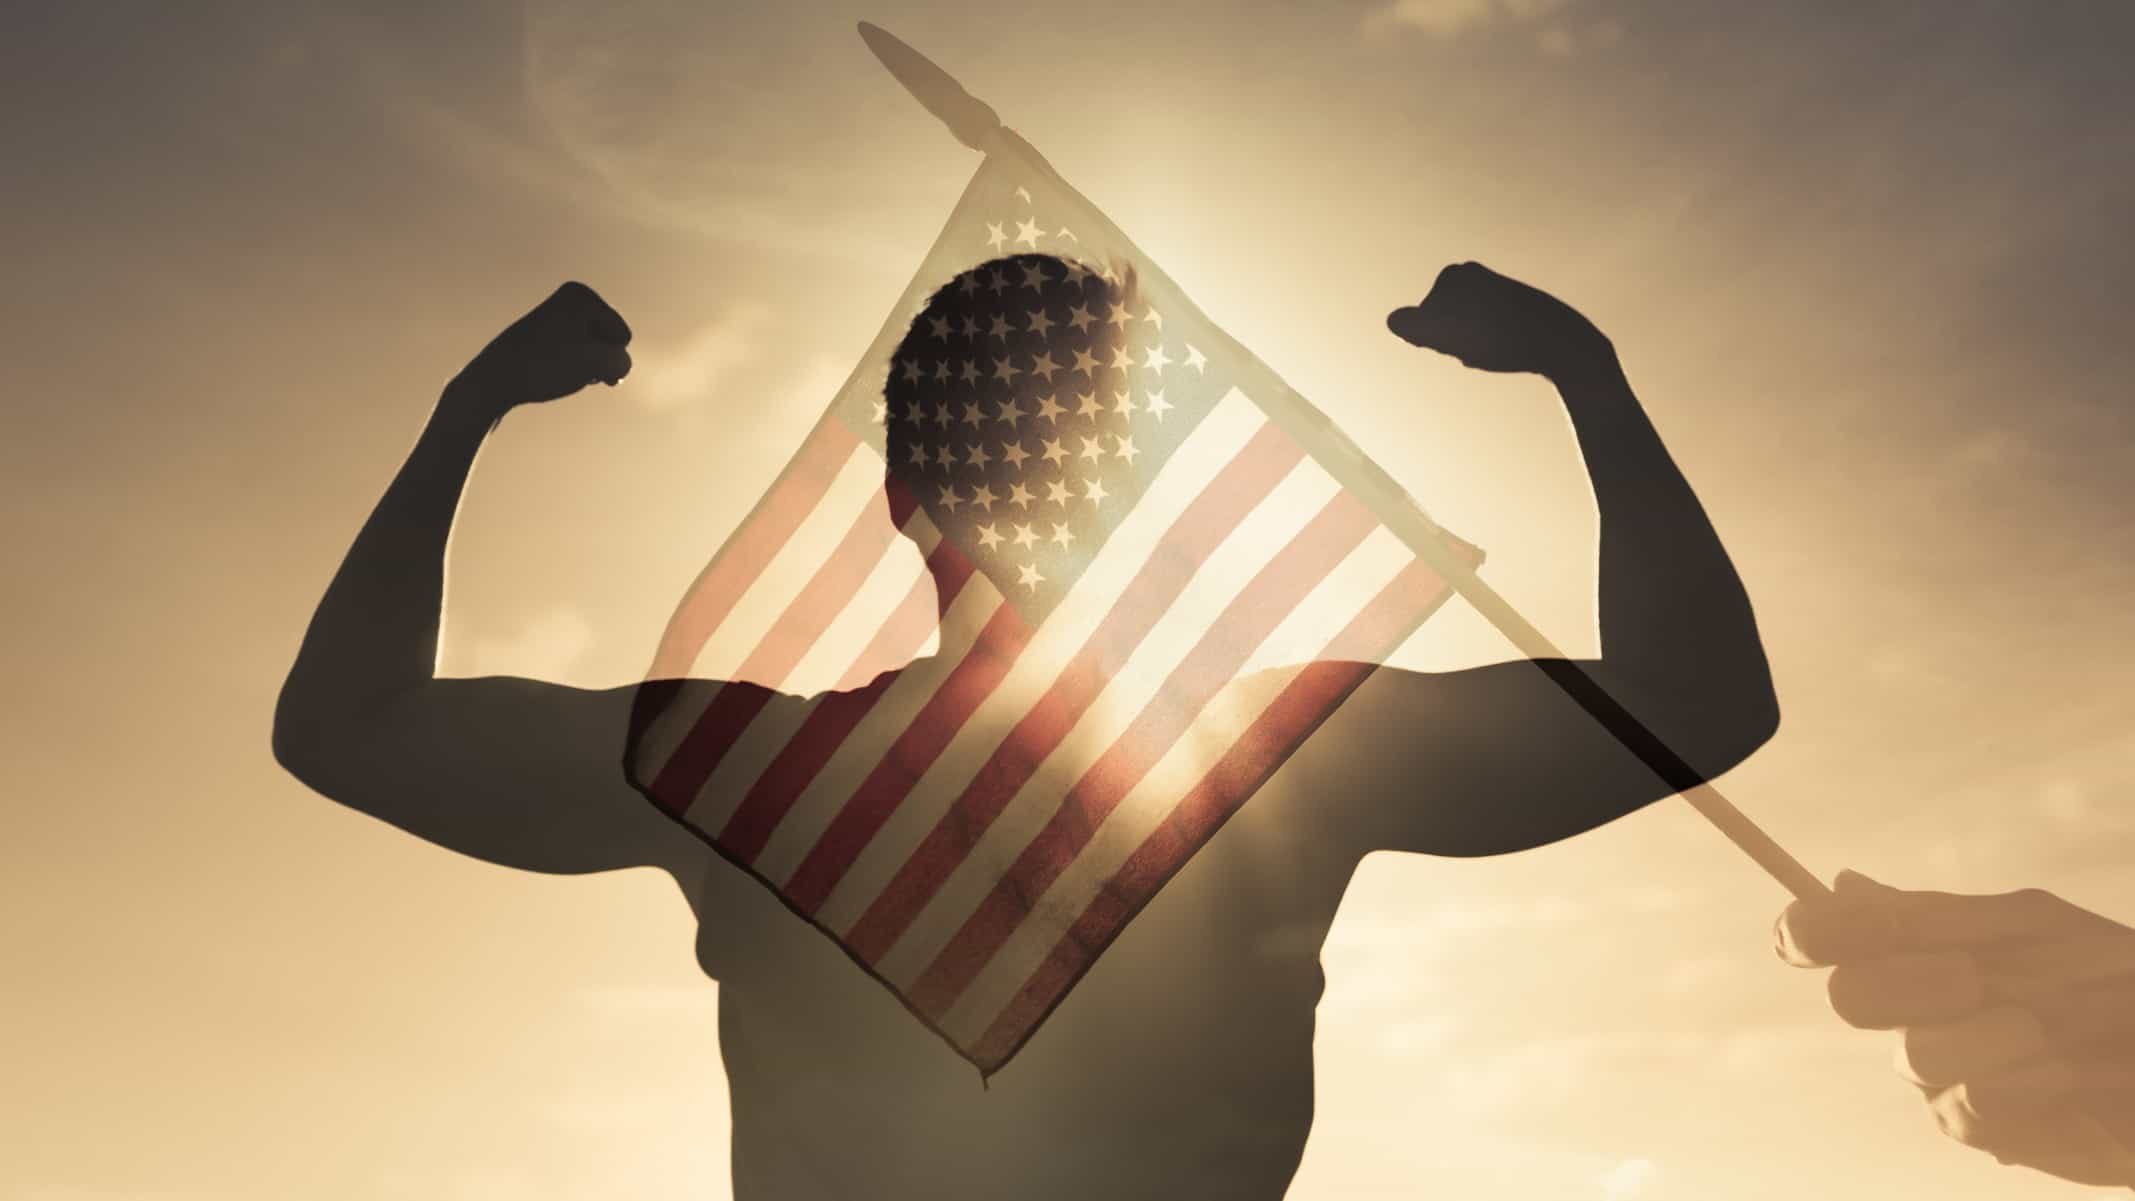 asx share price boosted by us investment represented by hand waving US flag across winning athlete